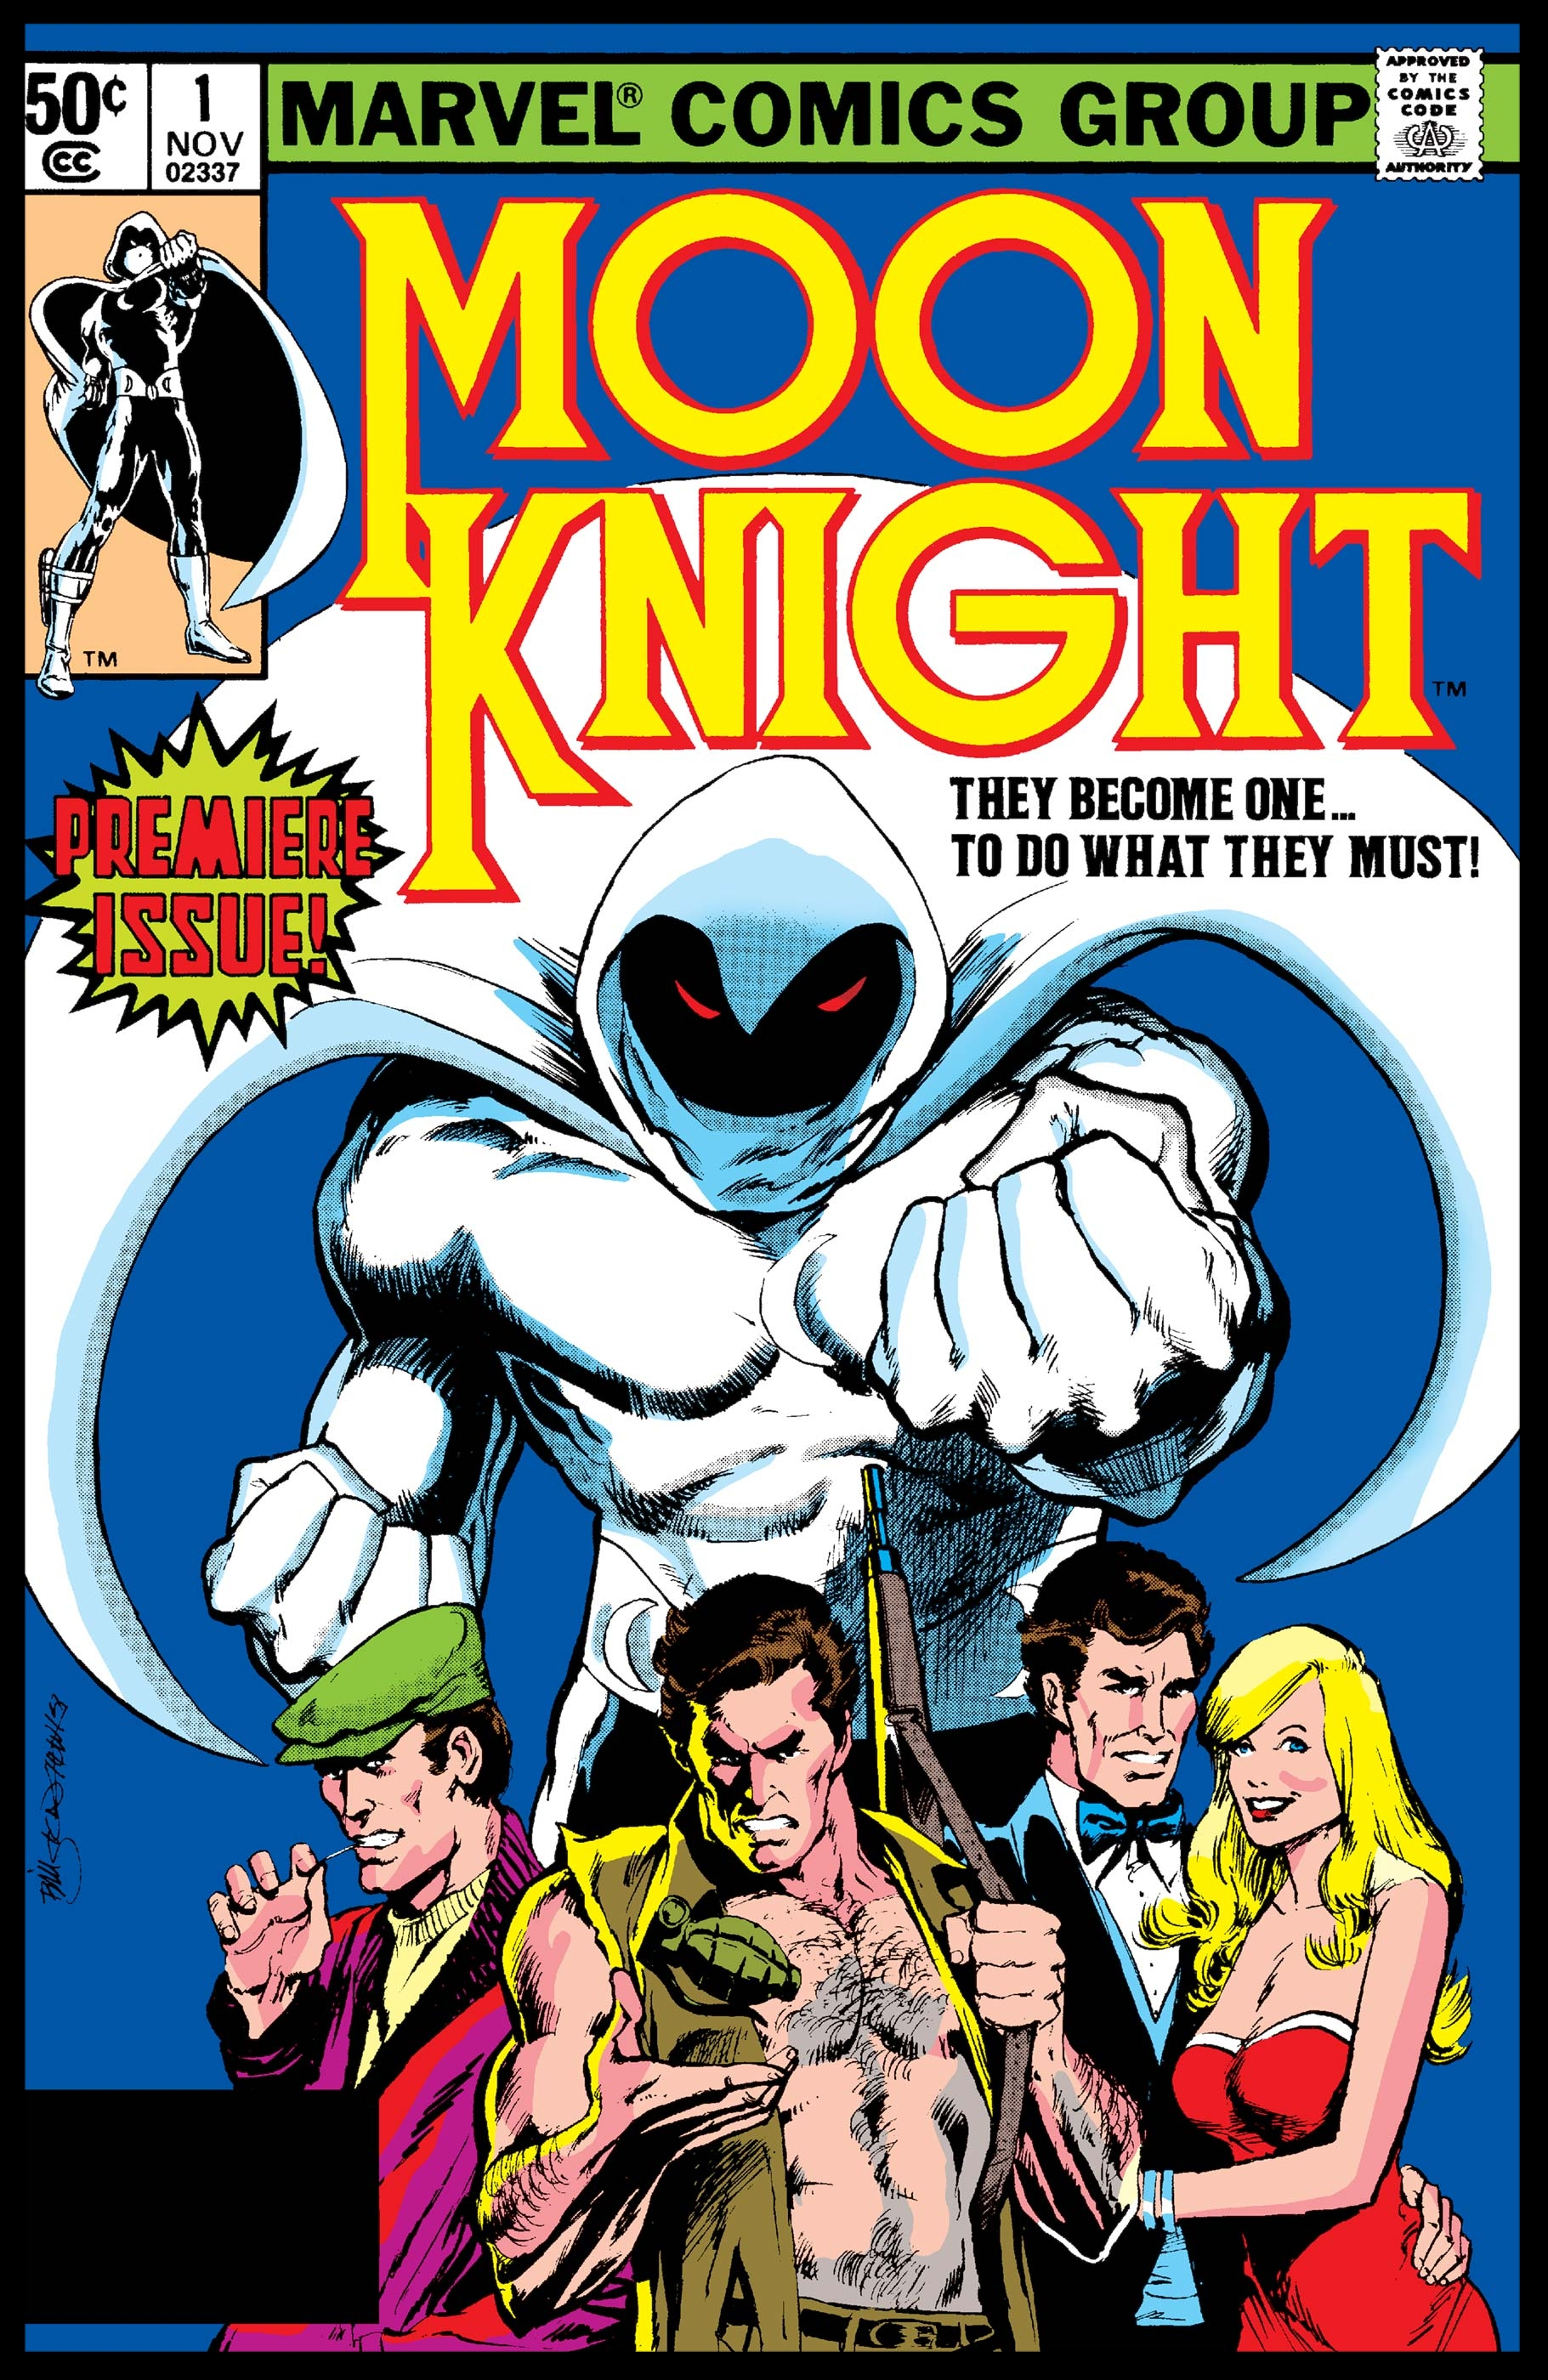 Moon Knight (1980) #1 Cover